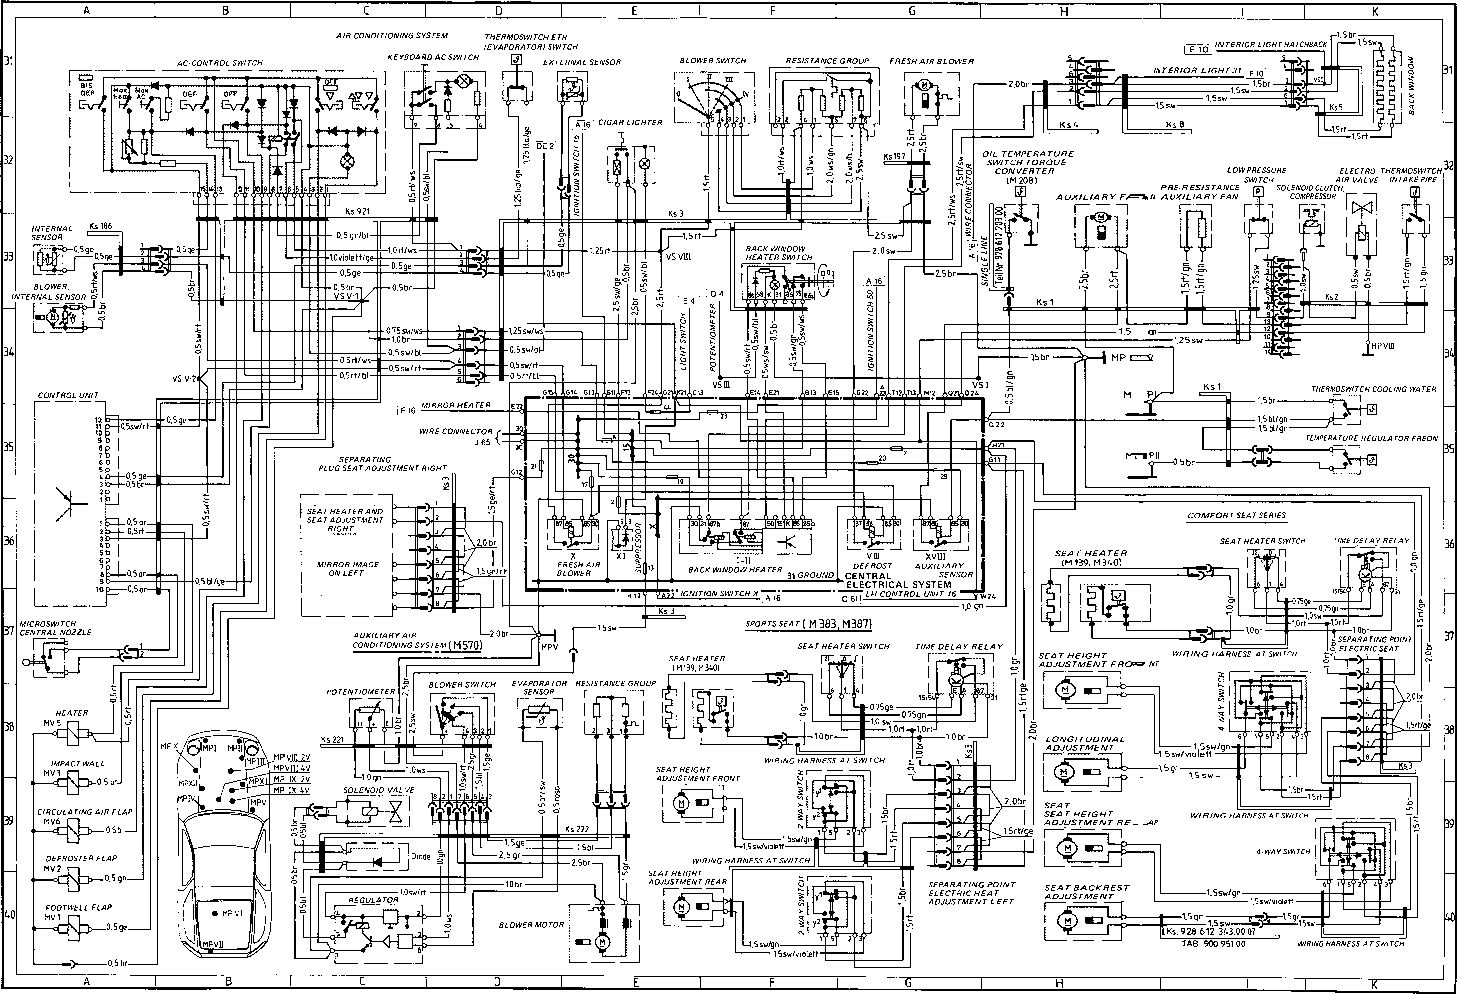 For Gl 1100 Wiring Diagram | Index listing of wiring diagrams Goldwing Wiring Diagram on snowmobile wiring diagram, cr wiring diagram, avalon wiring diagram, accessories wiring diagram, gl1200 wiring diagram, cb1100 wiring diagram, fjr wiring diagram, sci-fi wiring diagram, service wiring diagram, crf wiring diagram, phantom wiring diagram, renegade wiring diagram, honda wiring diagram, gl1500 wiring diagram, cmx250c wiring diagram, norton wiring diagram, motorcycle wiring diagram, gl1100 wiring diagram, crf450r wiring diagram, st wiring diagram,